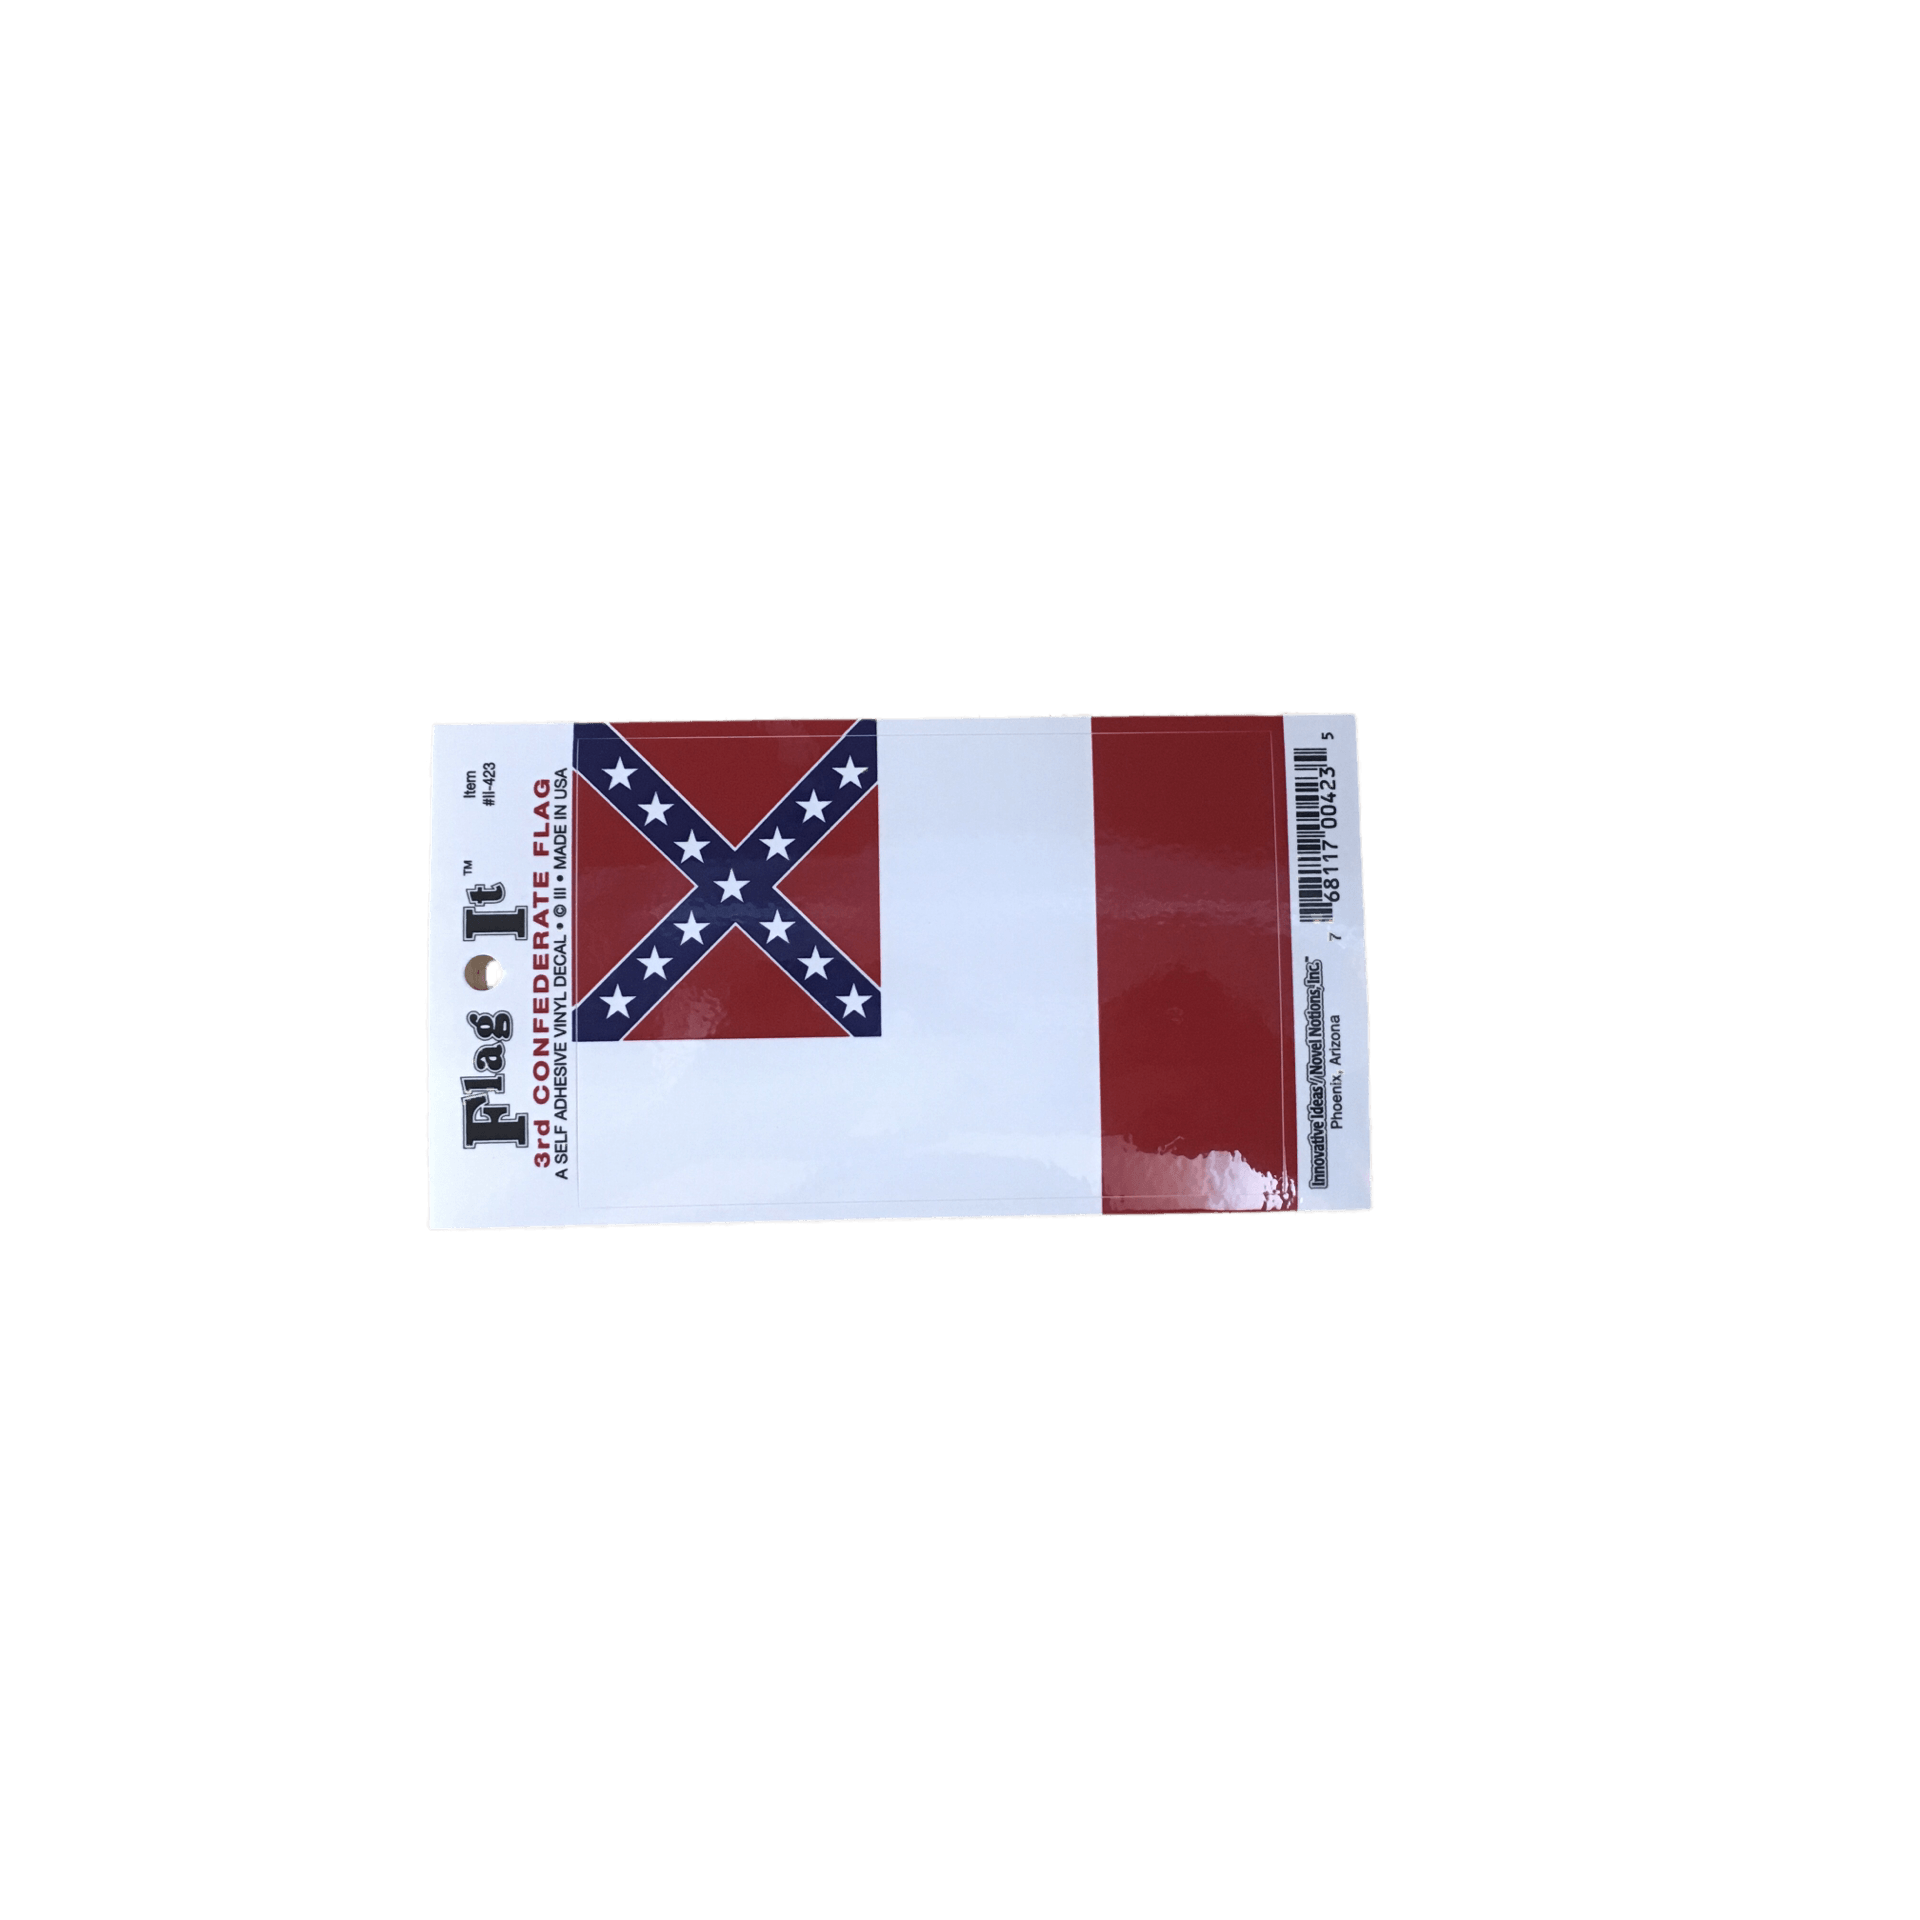 3rd confederate flag sticker smallstickerthe dixie shop 14558139 pngv1536520559